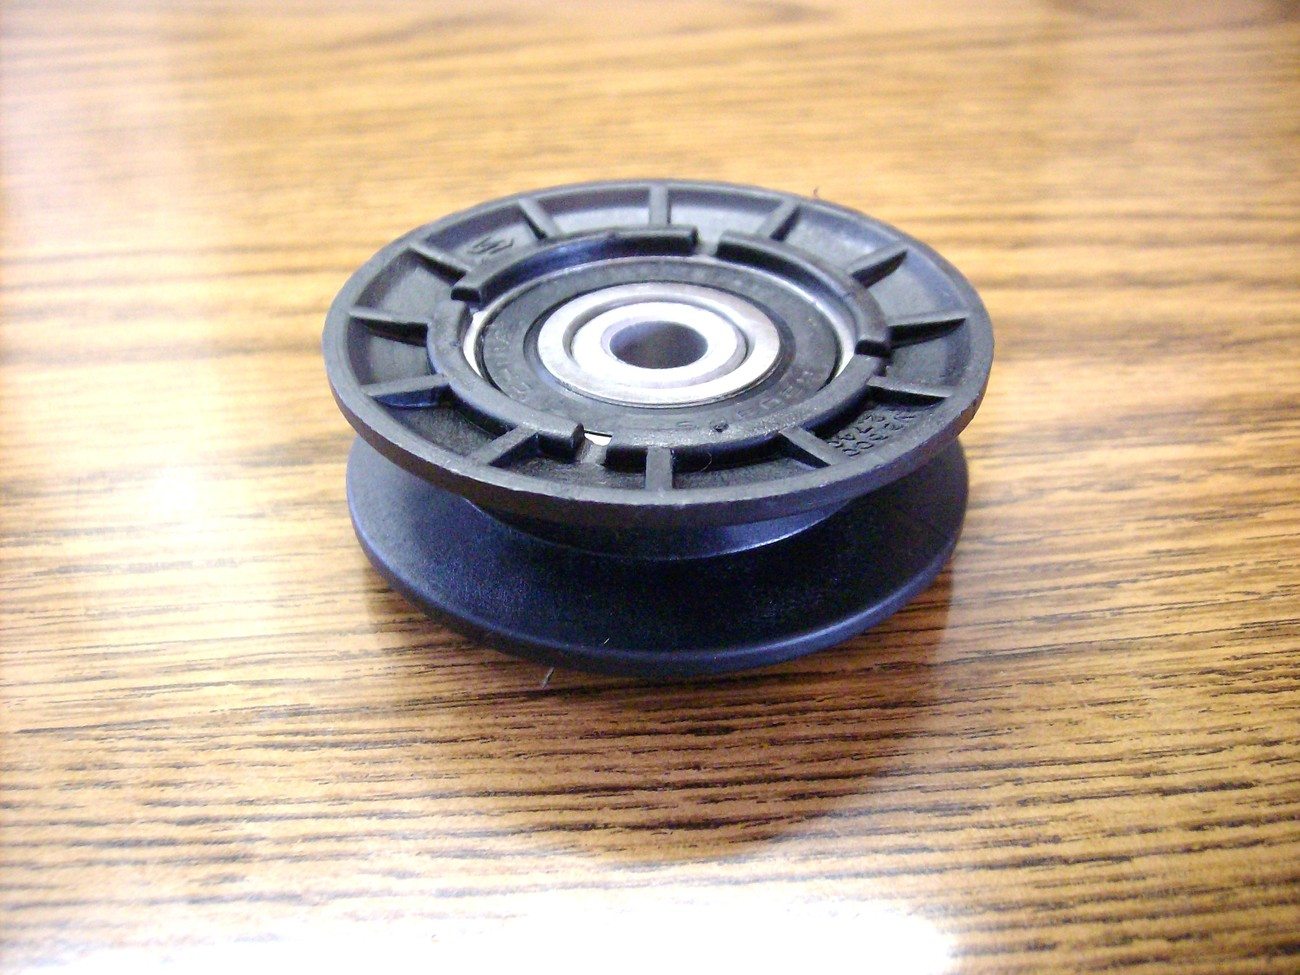 Grasshopper 718, 720, 725, 725K and 928D idler pulley 393312